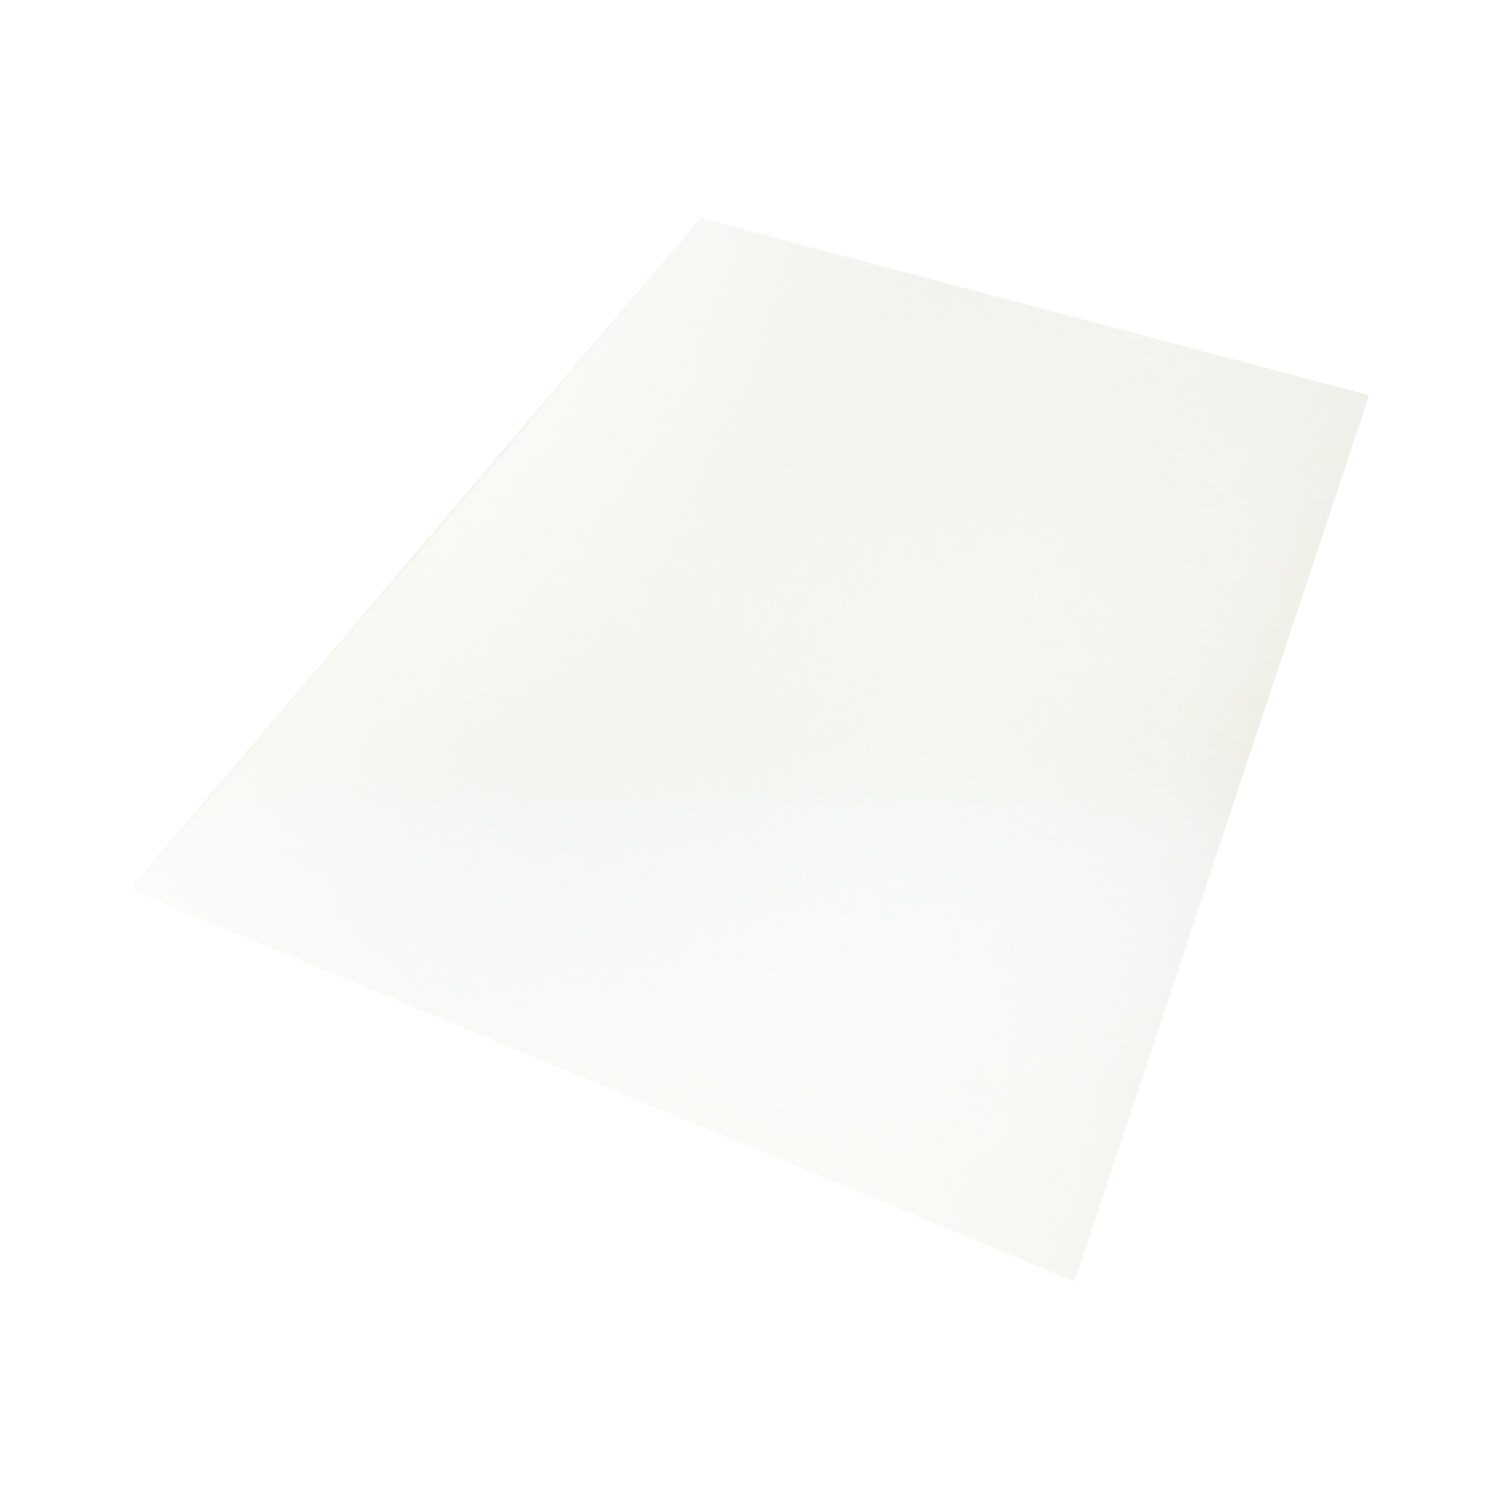 Esselte A4 Gloss White Binding Covers 215gsm (500)